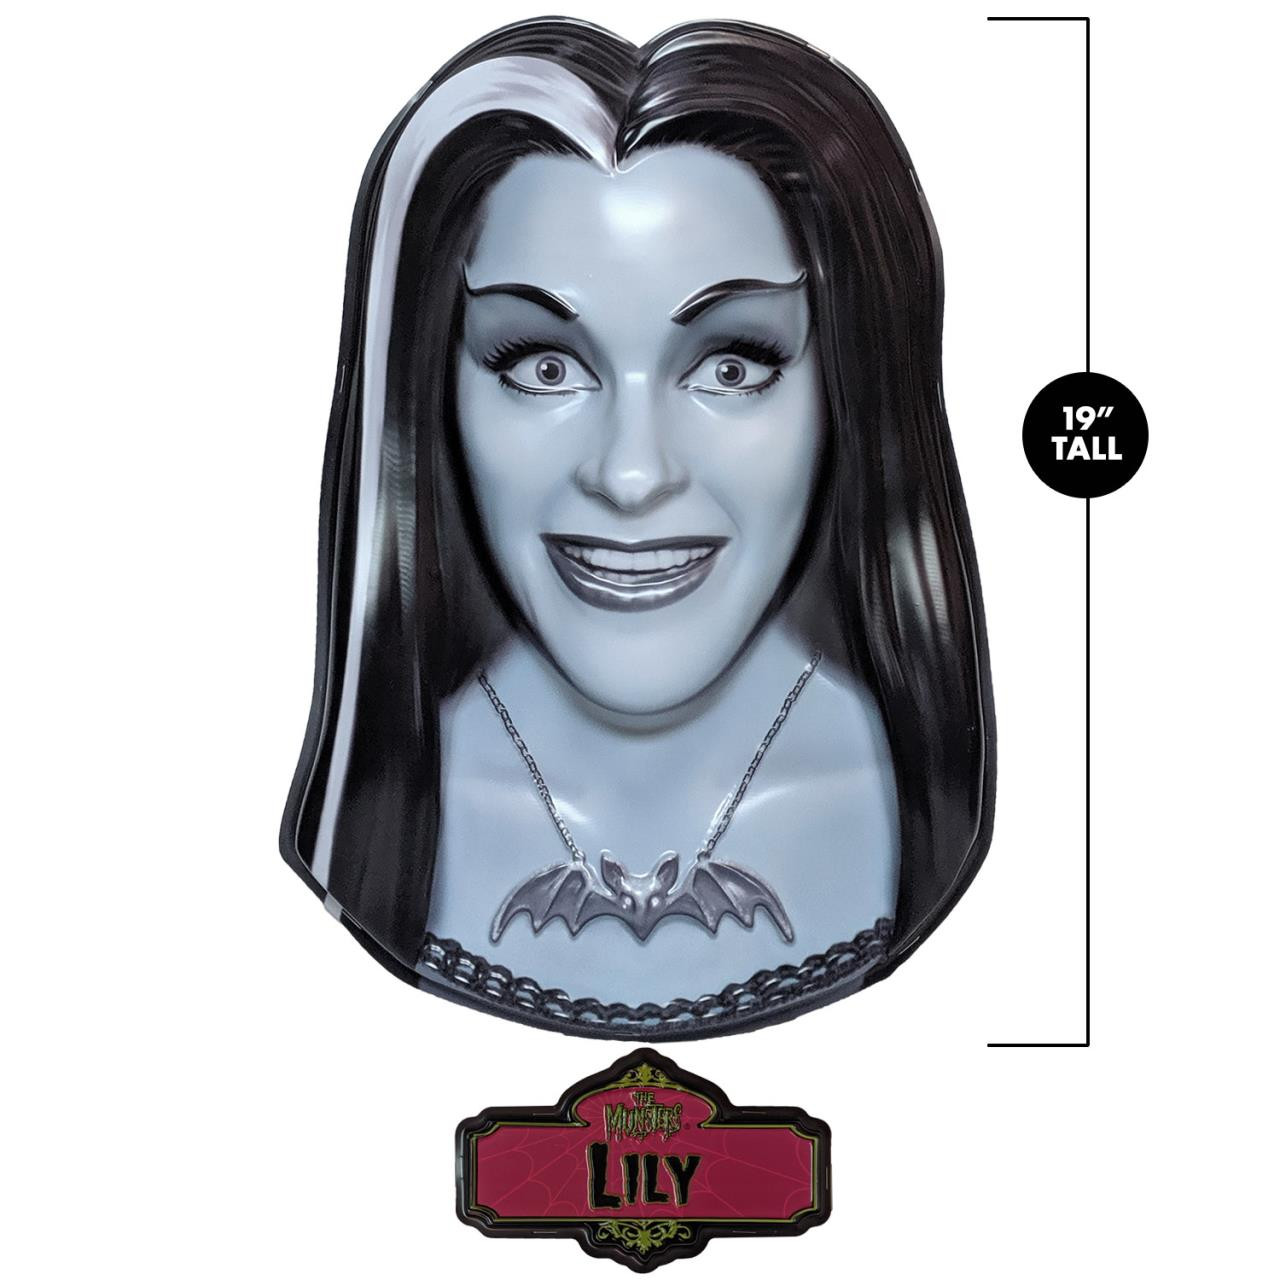 Lily Munster 3D Wall Decor* - 0659682815695